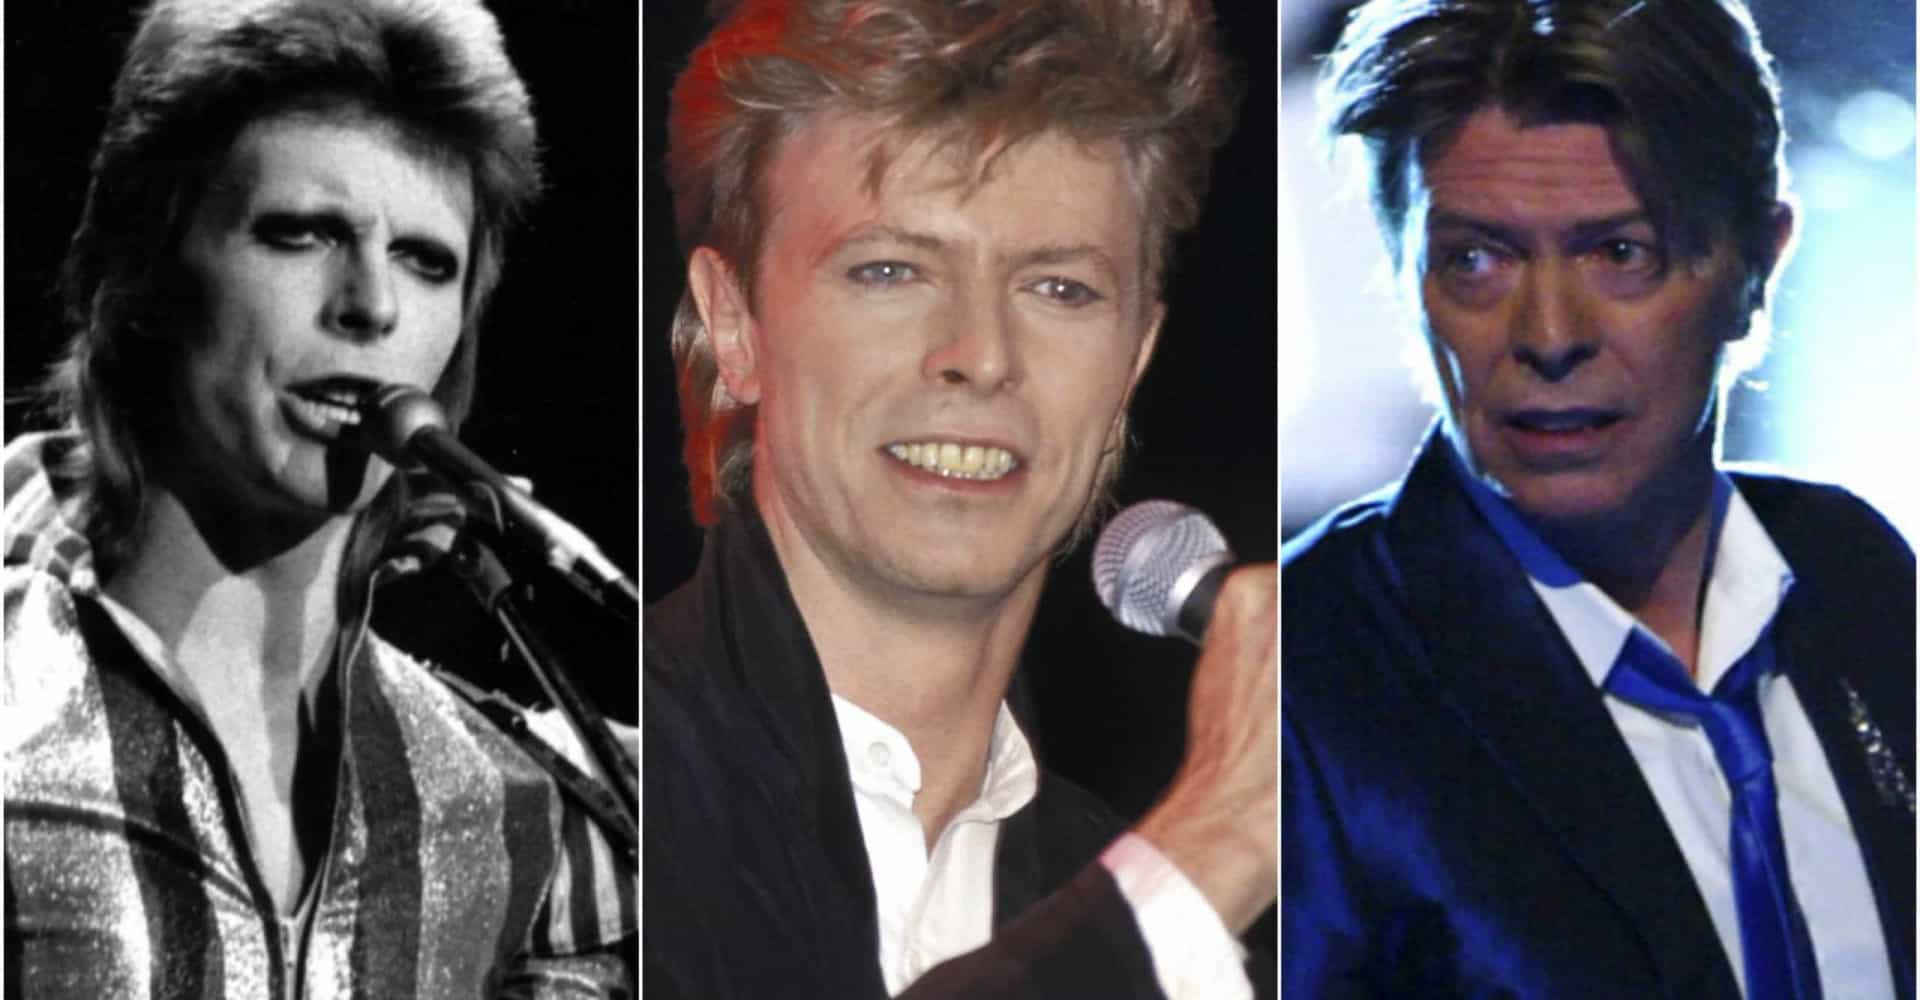 Three years without Ziggy: remembering the life of David Bowie